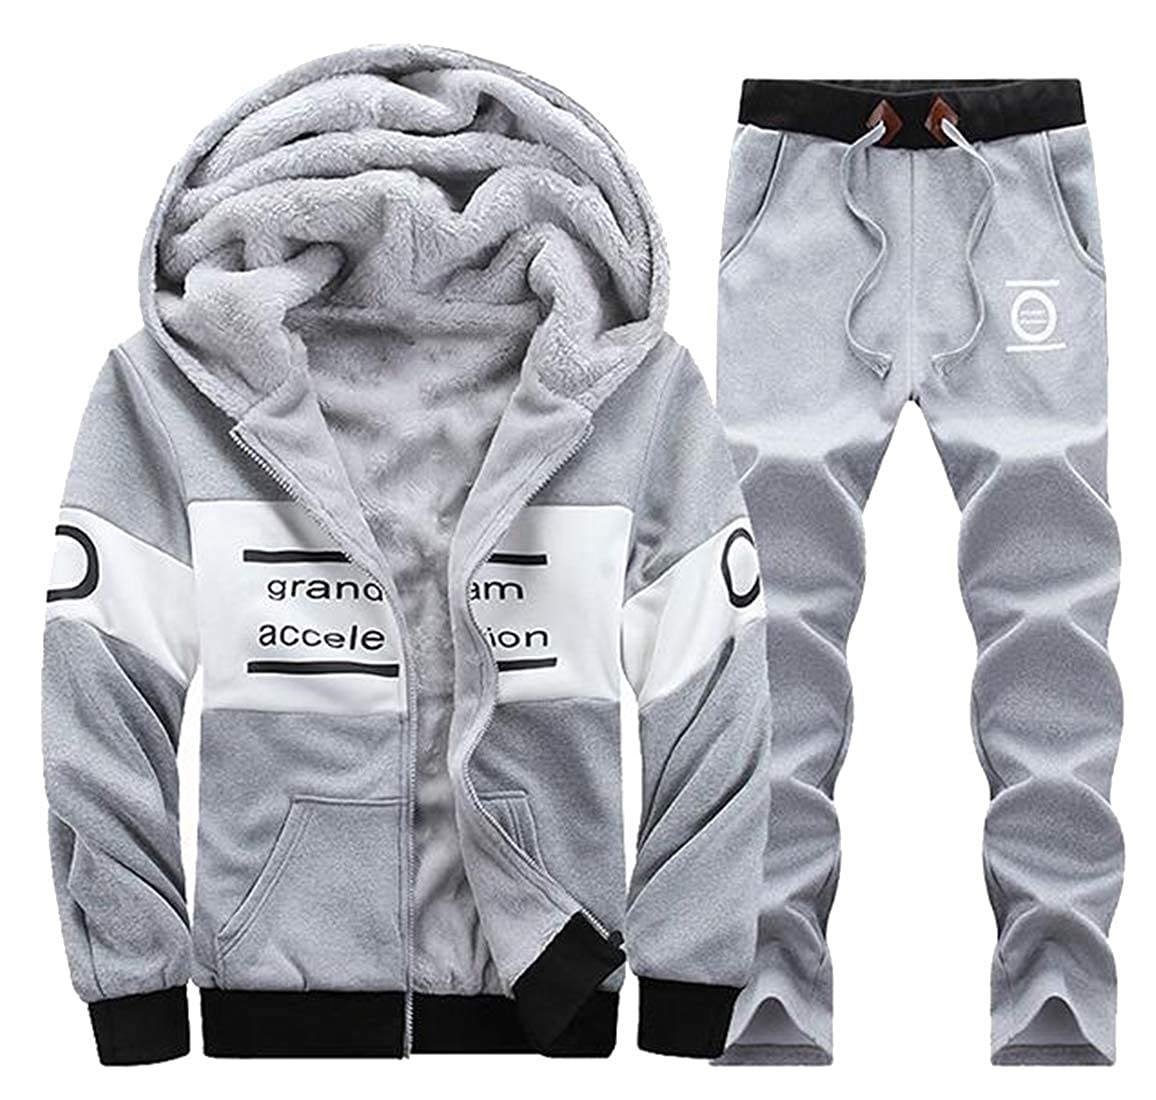 pipigo Mens Casual Sport Warm 2 Pieces Suits Hoodie Fall /& Winter Fleece Outfits Tracksuit Sweatsuits Light Grey XS